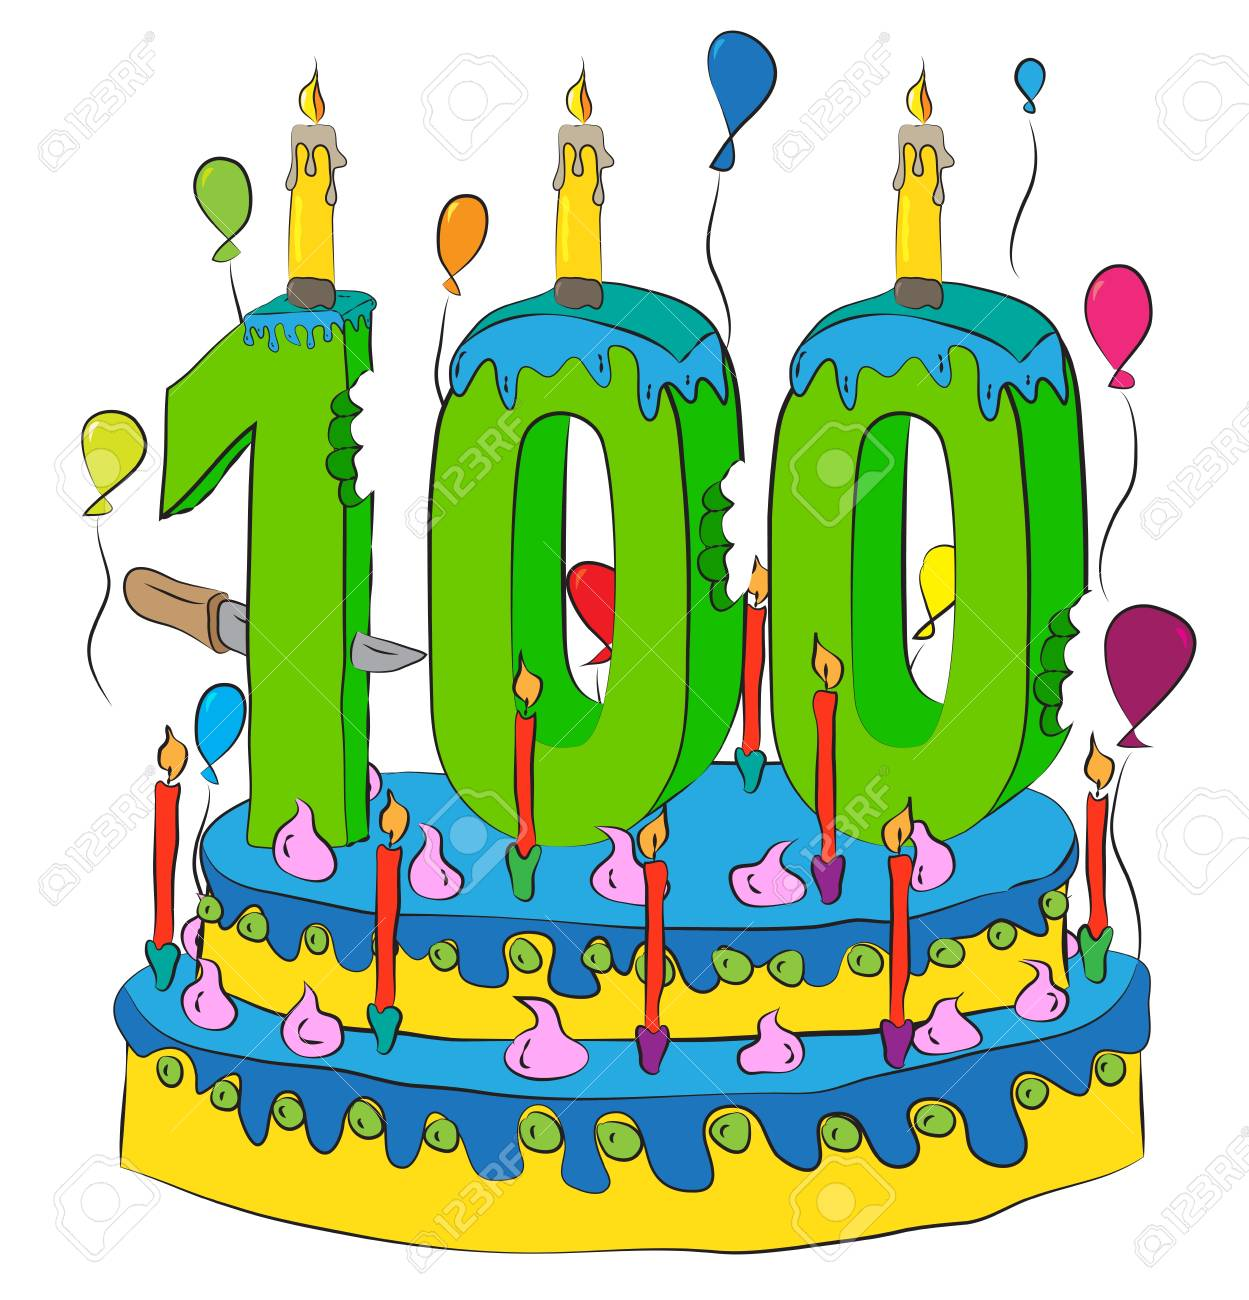 100 Birthday Cake With Number Hundred Candle Celebrating Hundredth Year Of Life Colorful Balloons